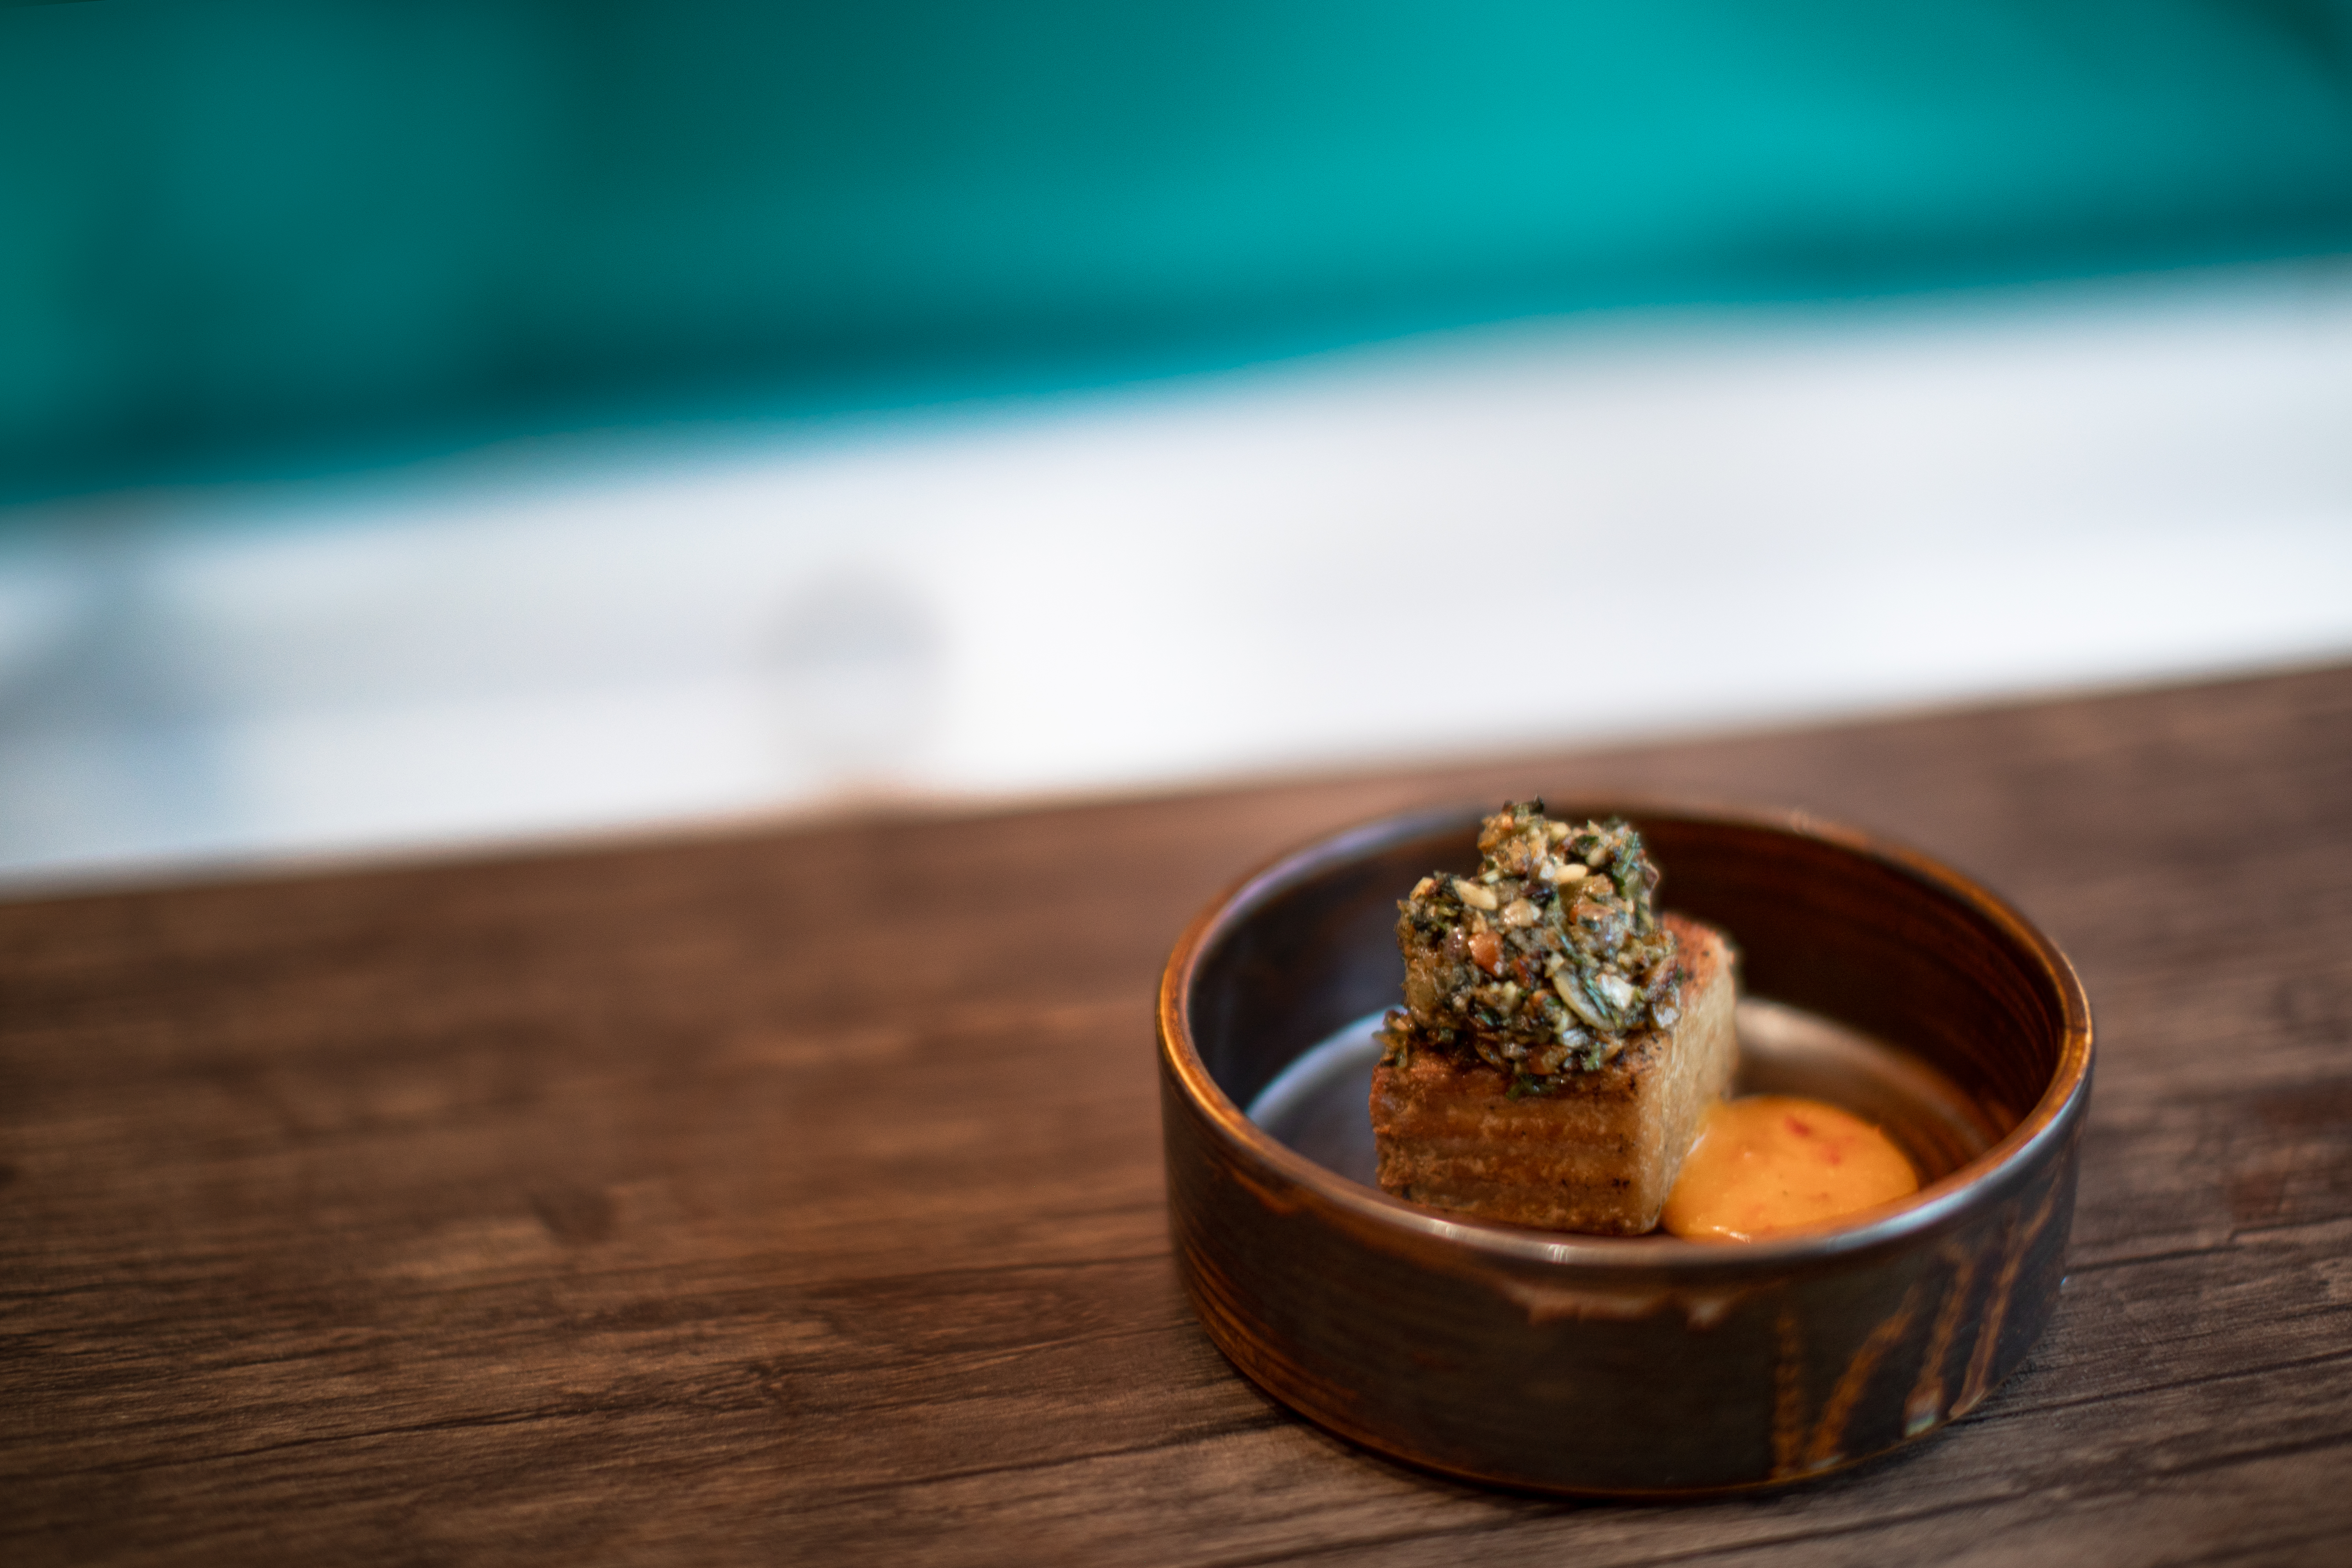 Ekuru at Chishuru in Brixton, one of the most exciting new restaurants to open in London this year